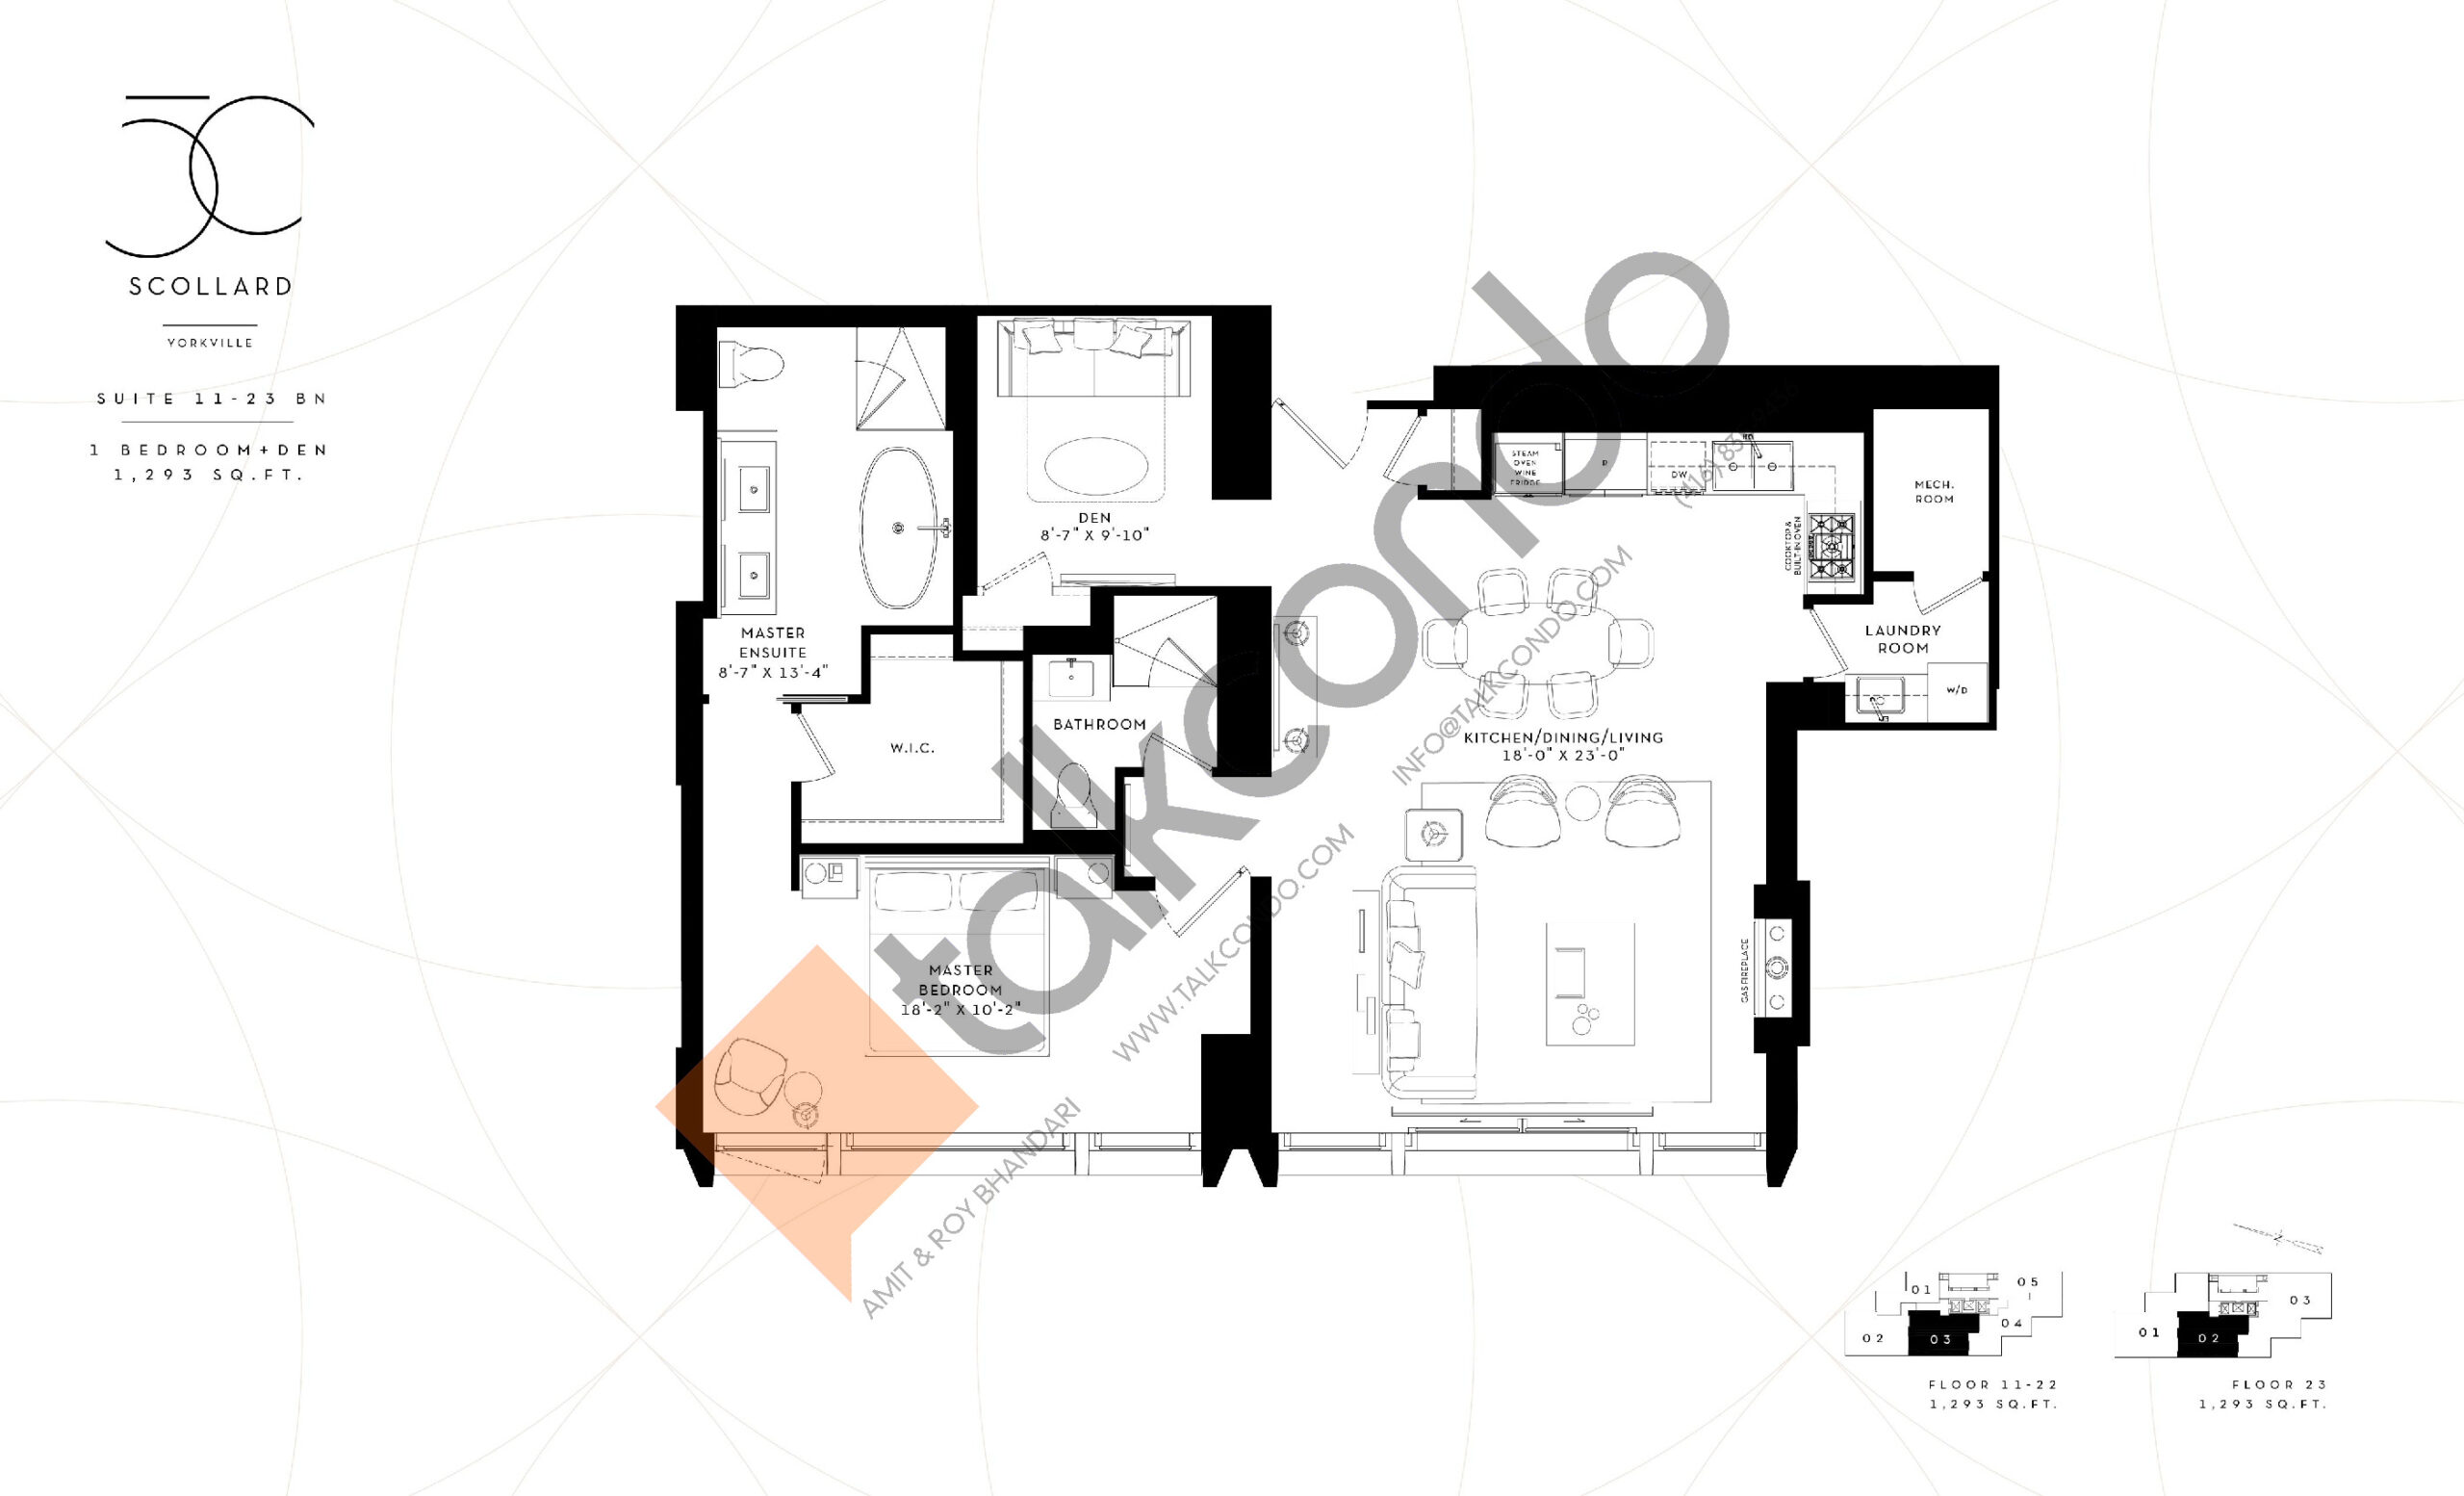 Suite 11-23 BN Floor Plan at Fifty Scollard Condos - 1293 sq.ft